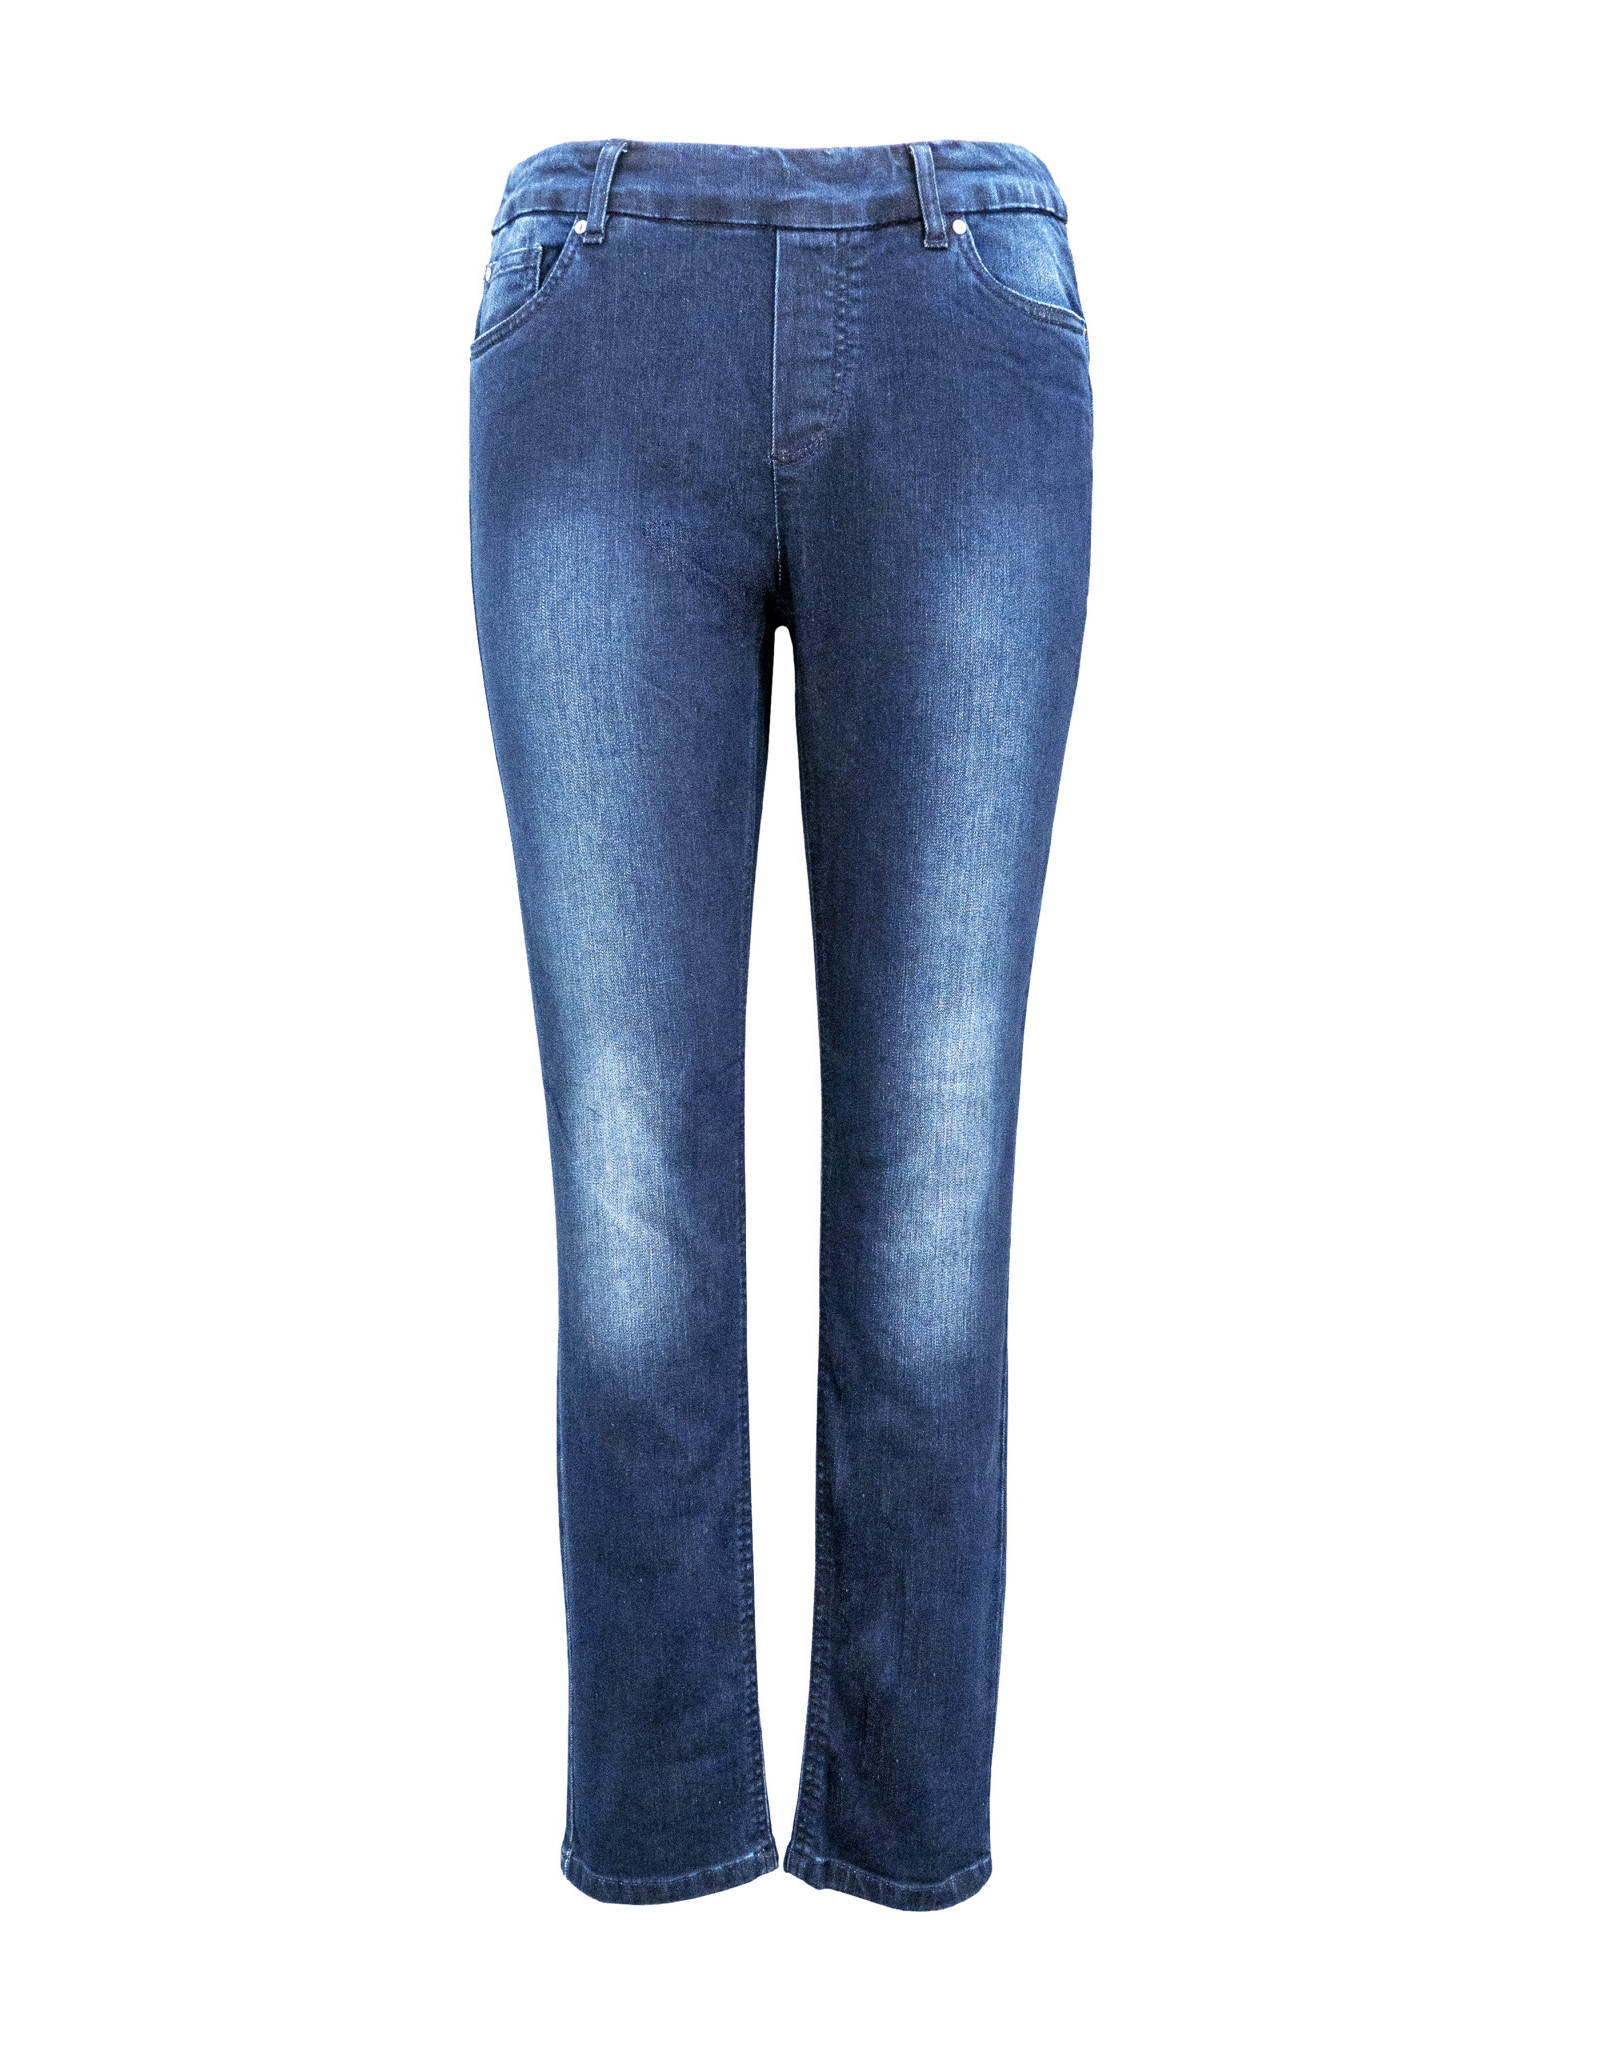 Up! Up! 360 Jean